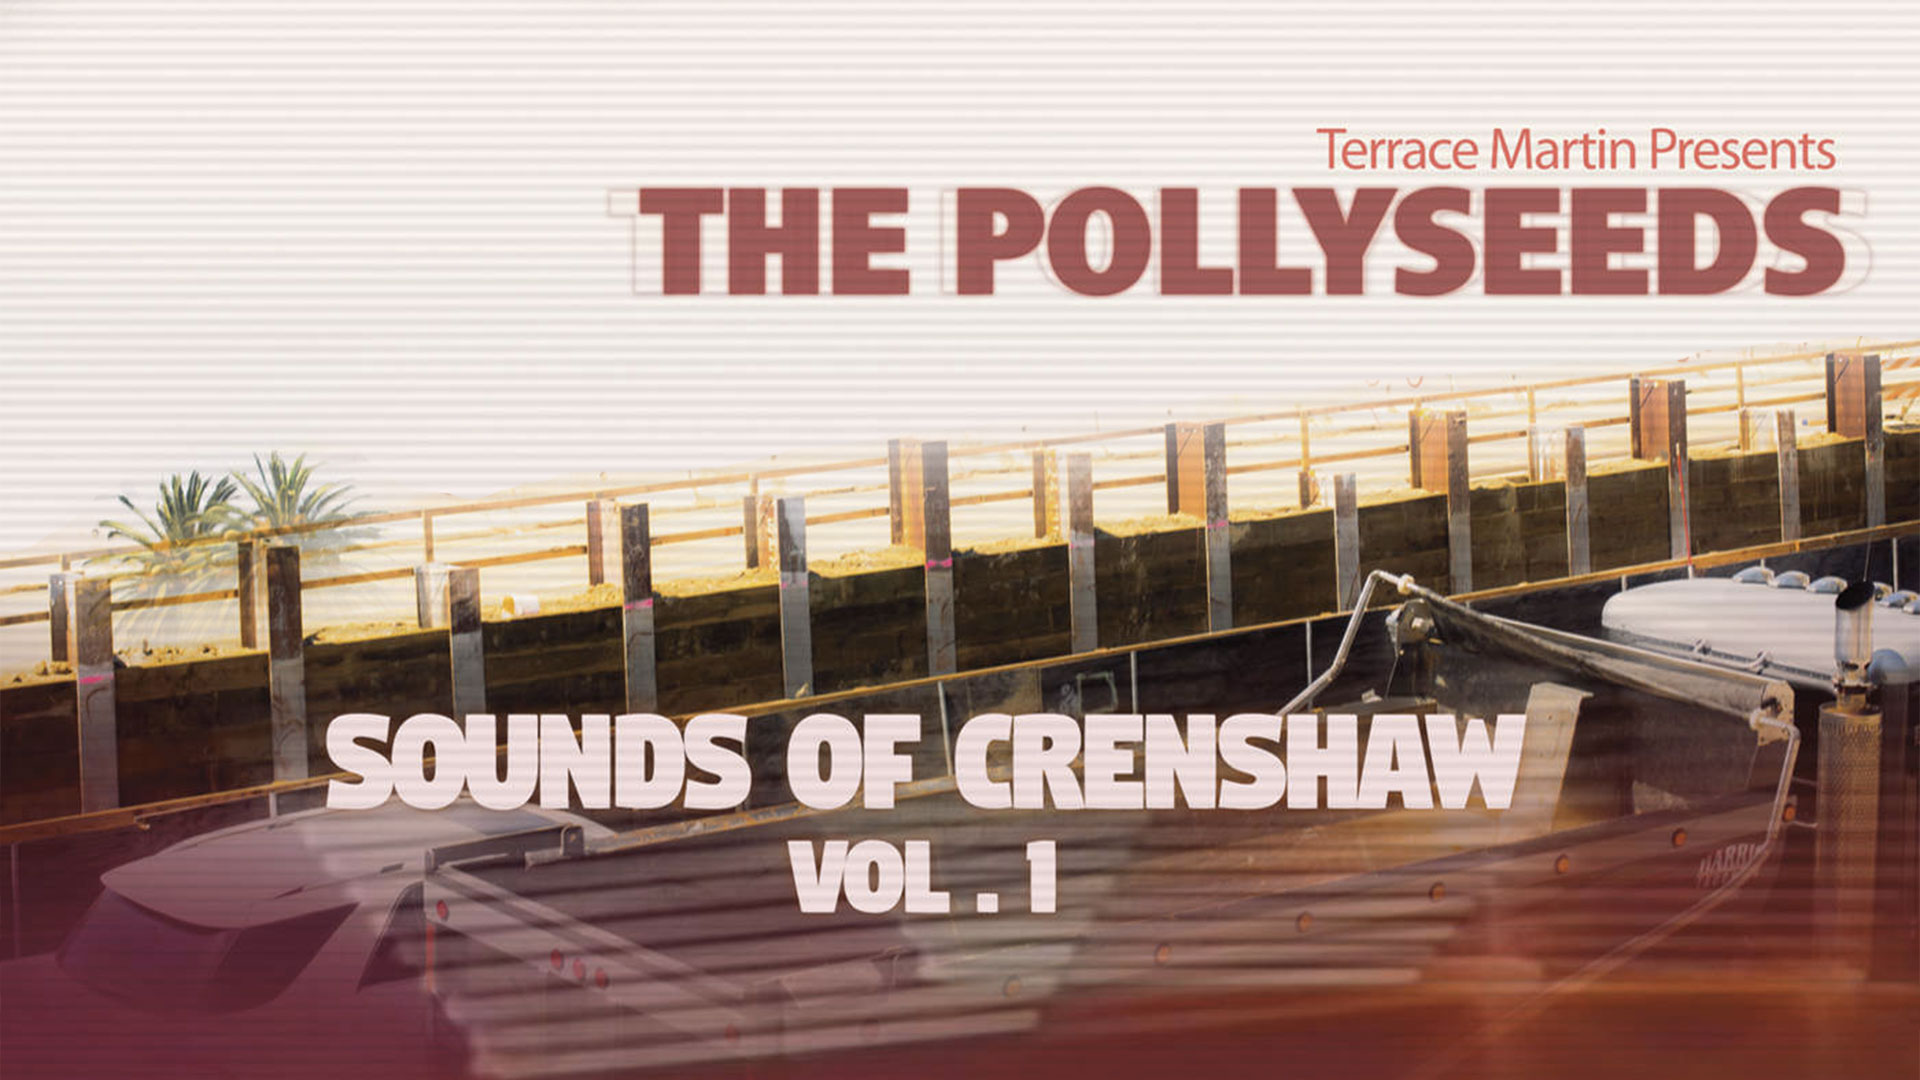 Terrace Martin Presents The Pollyseeds: Sounds of Crenshaw Vol. 1